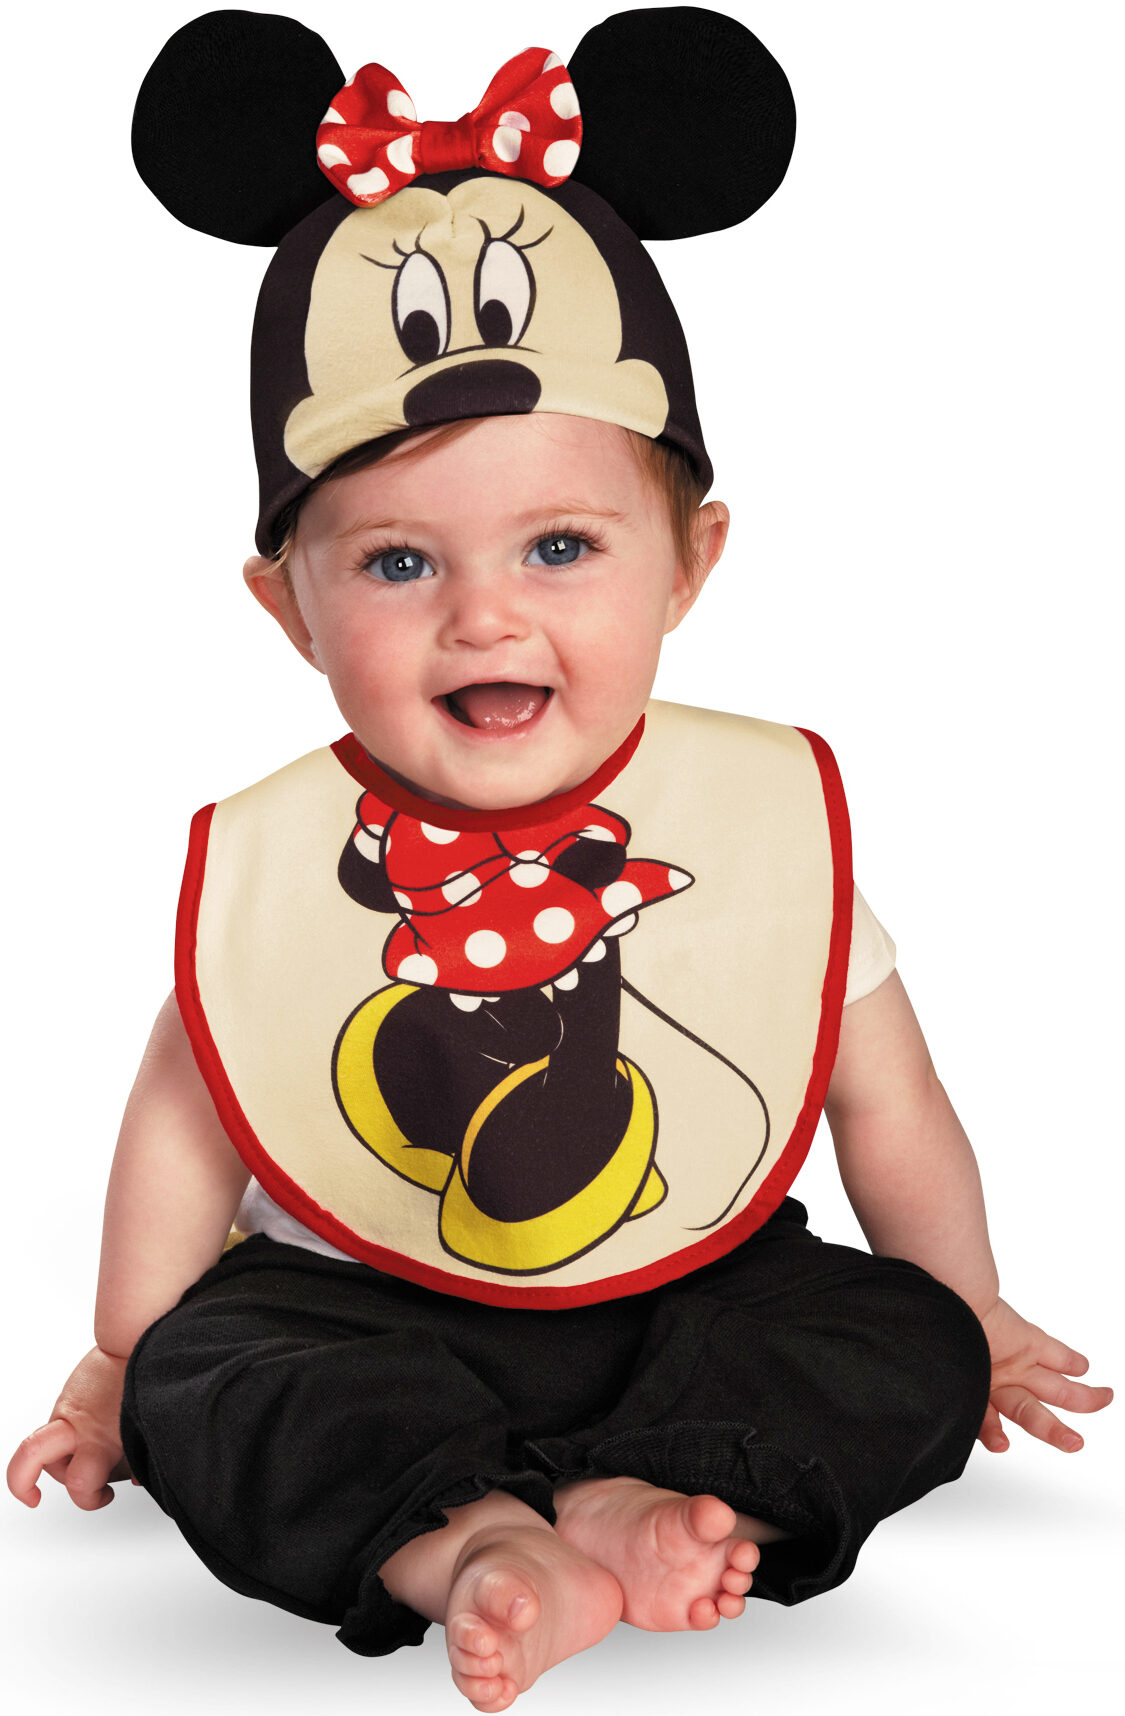 Shop for minnie mouse baby costume online at Target. Free shipping on purchases over $35 and save 5% every day with your Target REDcard.